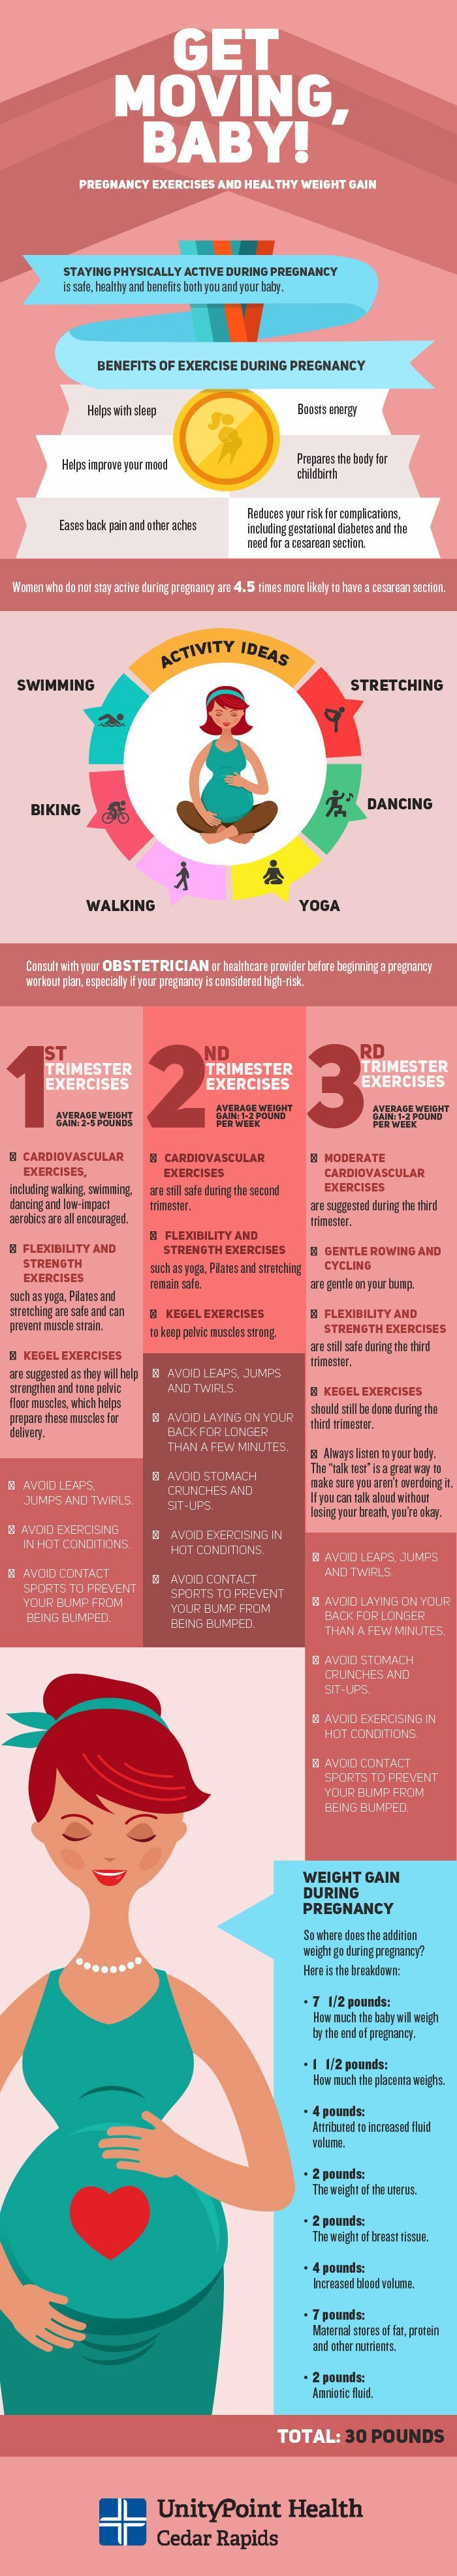 Benefits Of Exercising While Pregnant 97